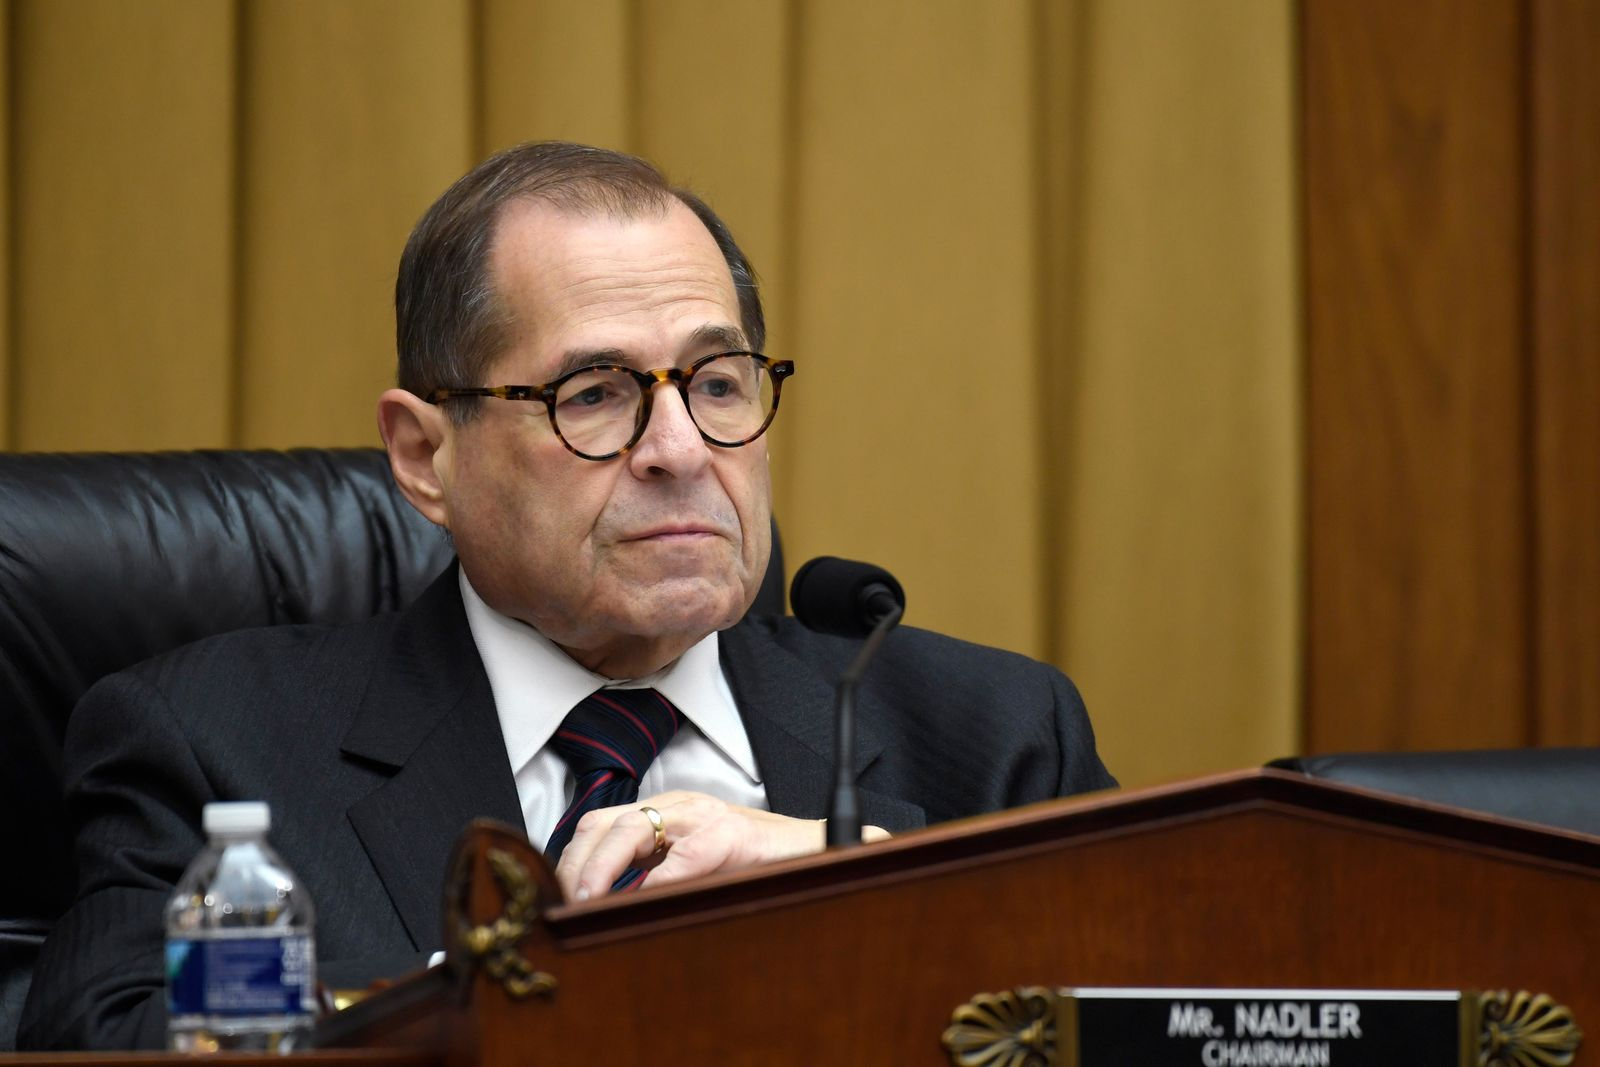 House Judiciary Committee Chairman Jerrold Nadler, D-N.Y., listens during a hearing on Capitol Hill in Washington, Tuesday, Oct. 22, 2019, on election security. (AP Photo/Susan Walsh)